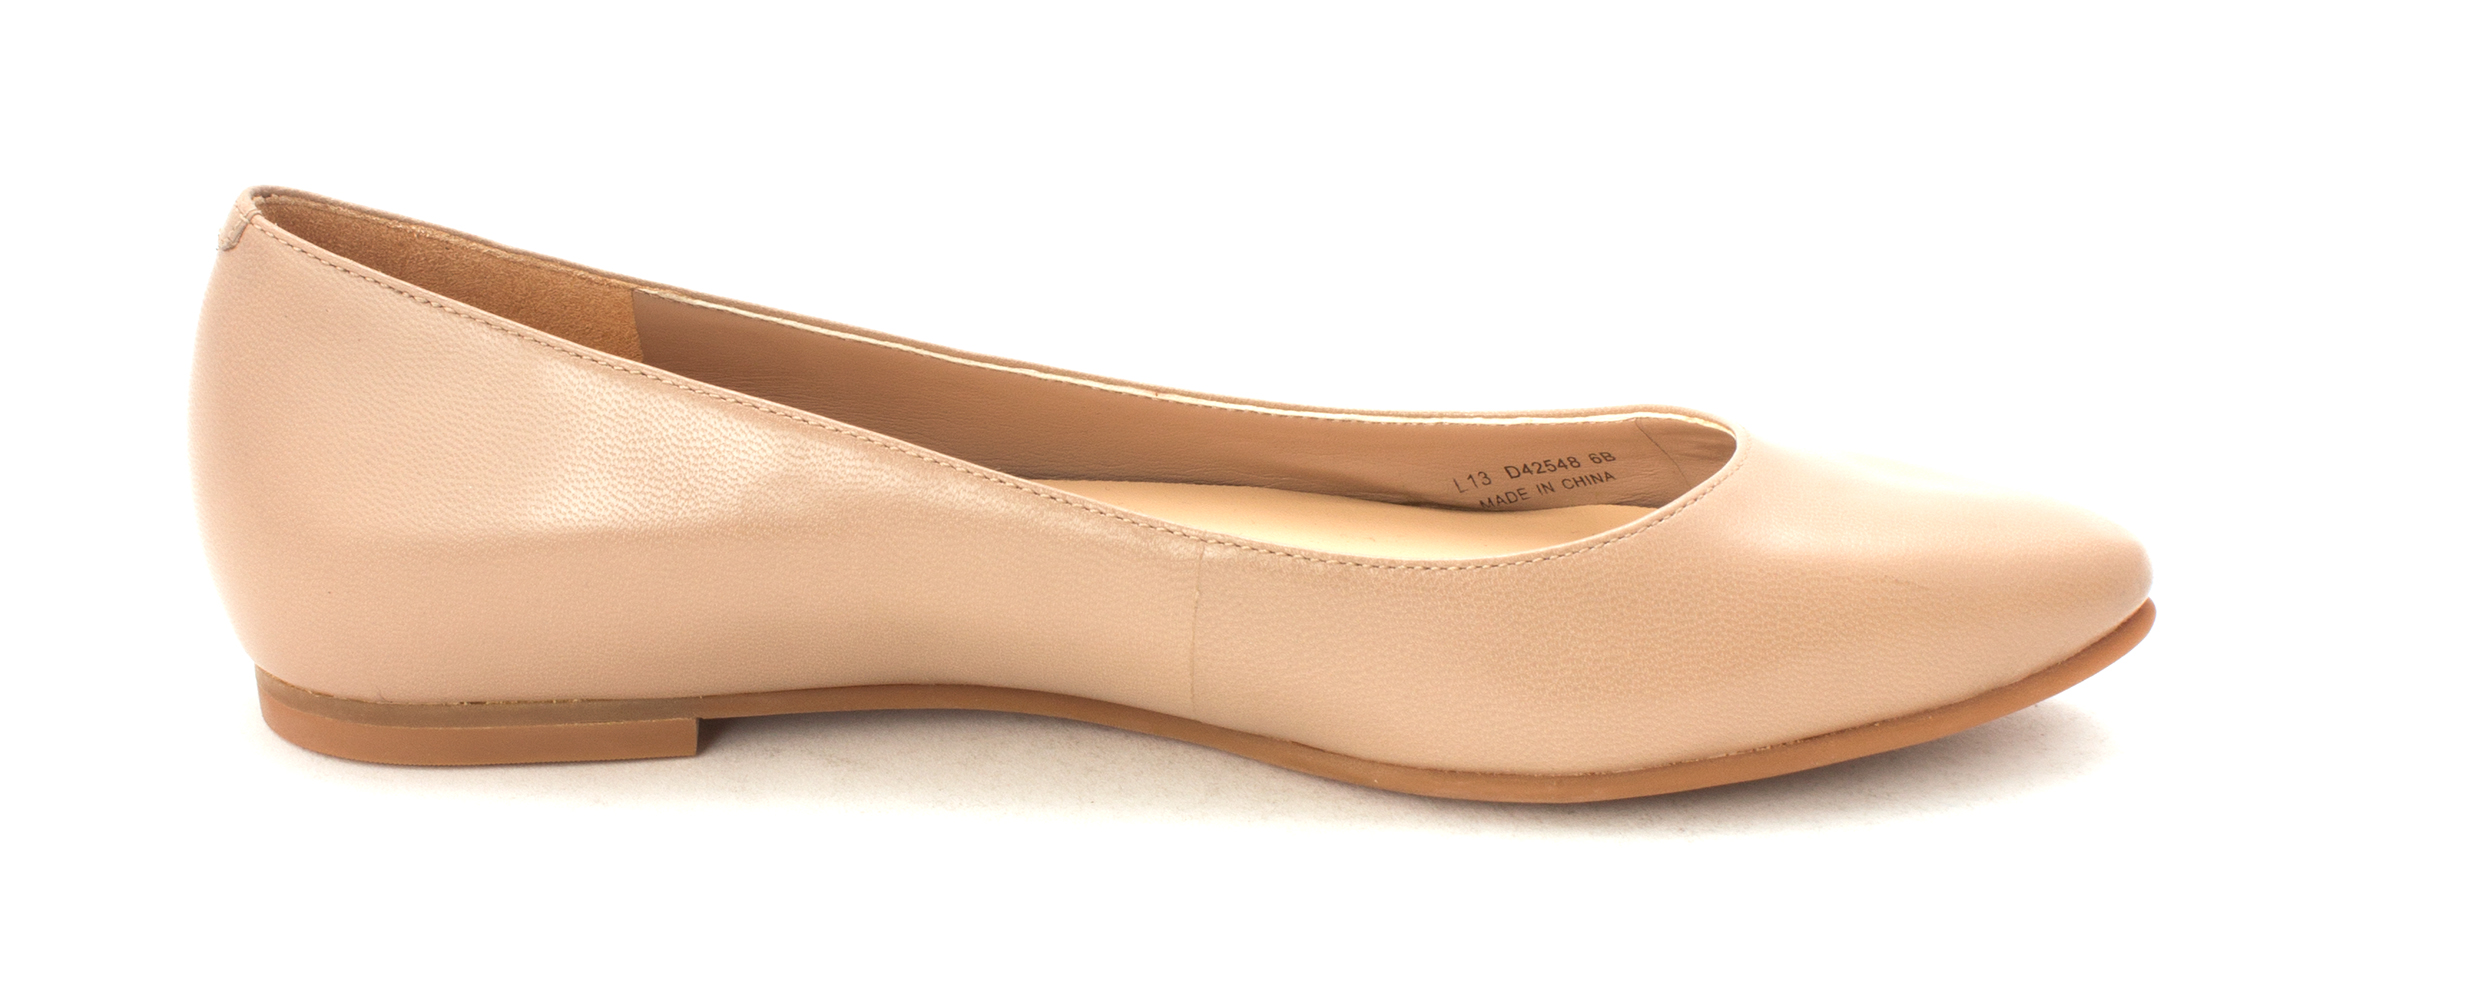 Cole Haan Womens Fernsam Closed Toe Slide Flats, Tan, Size 6.0